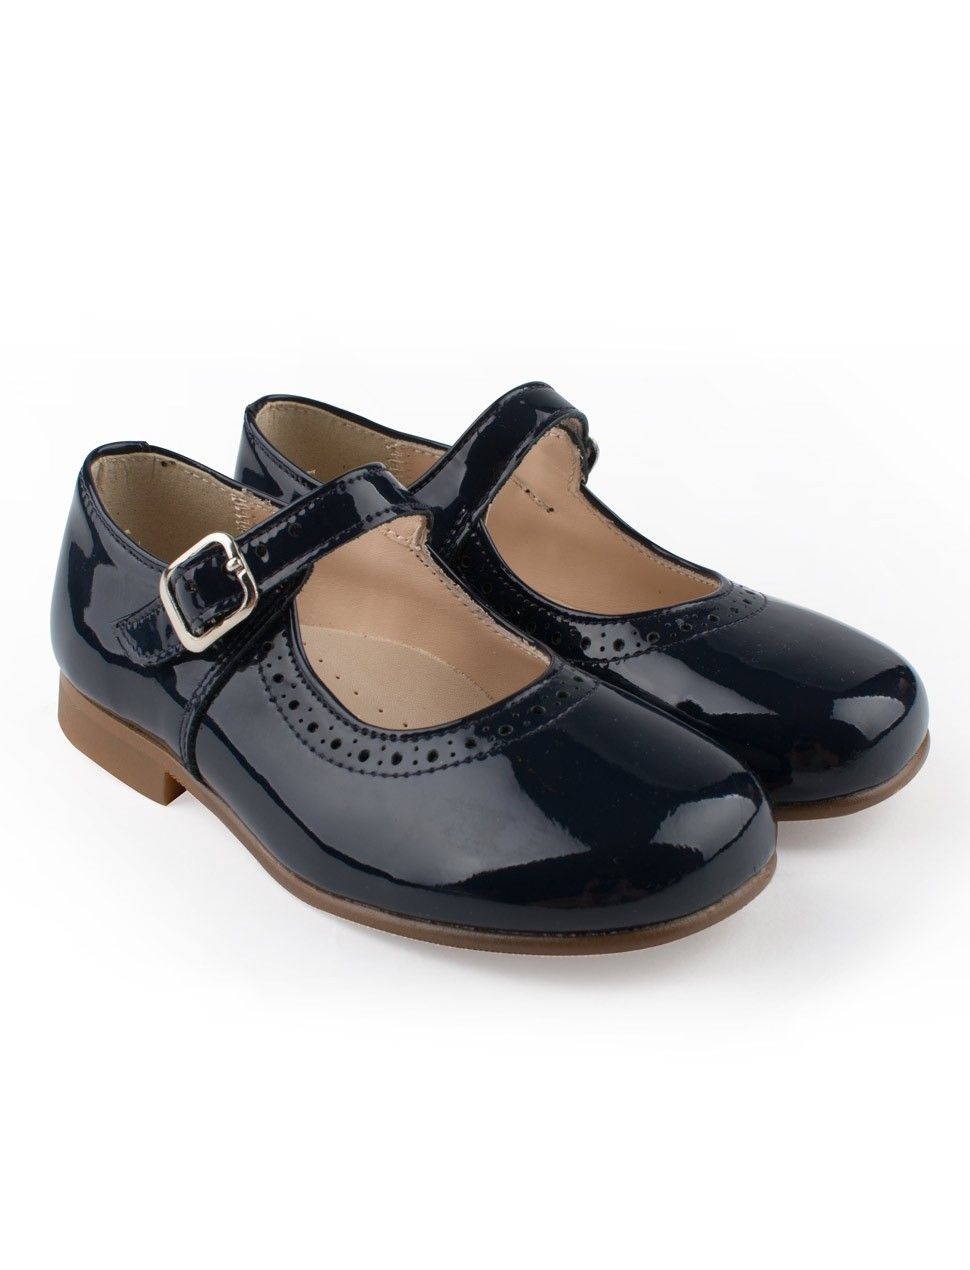 e0f72230af6c8 Classic brogues patent leather girls shoes in navy blue with buckle from Eli